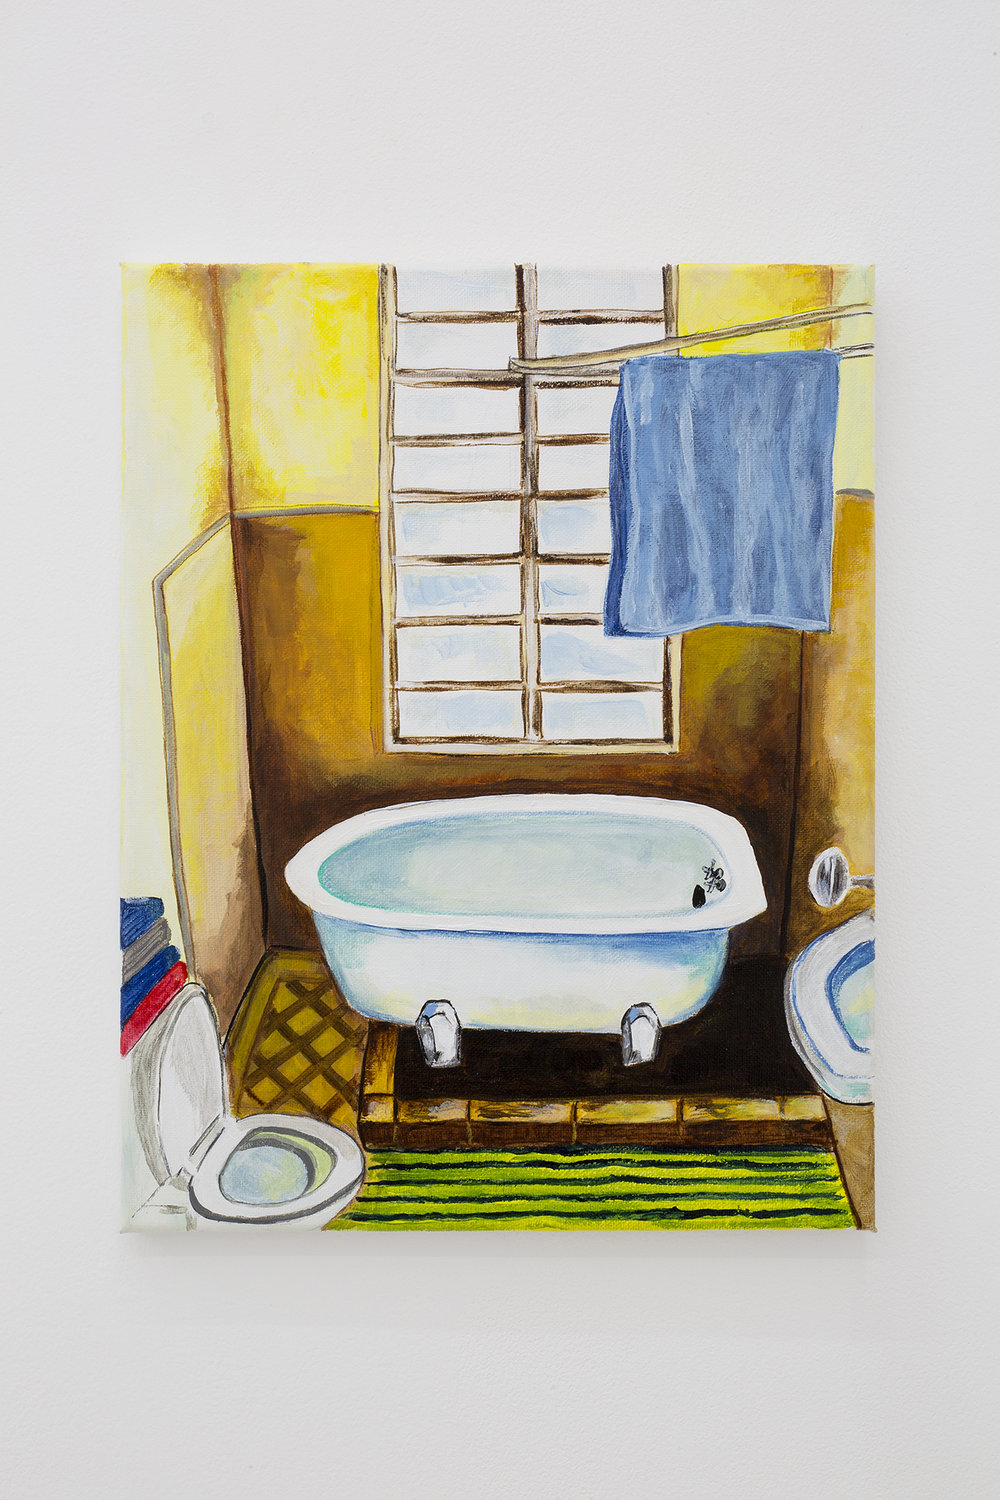 Shana Sharp, Lulu tub, 2018. Acrylic on canvas. 11 x 14 inch (27.94 x 35.56 cm)